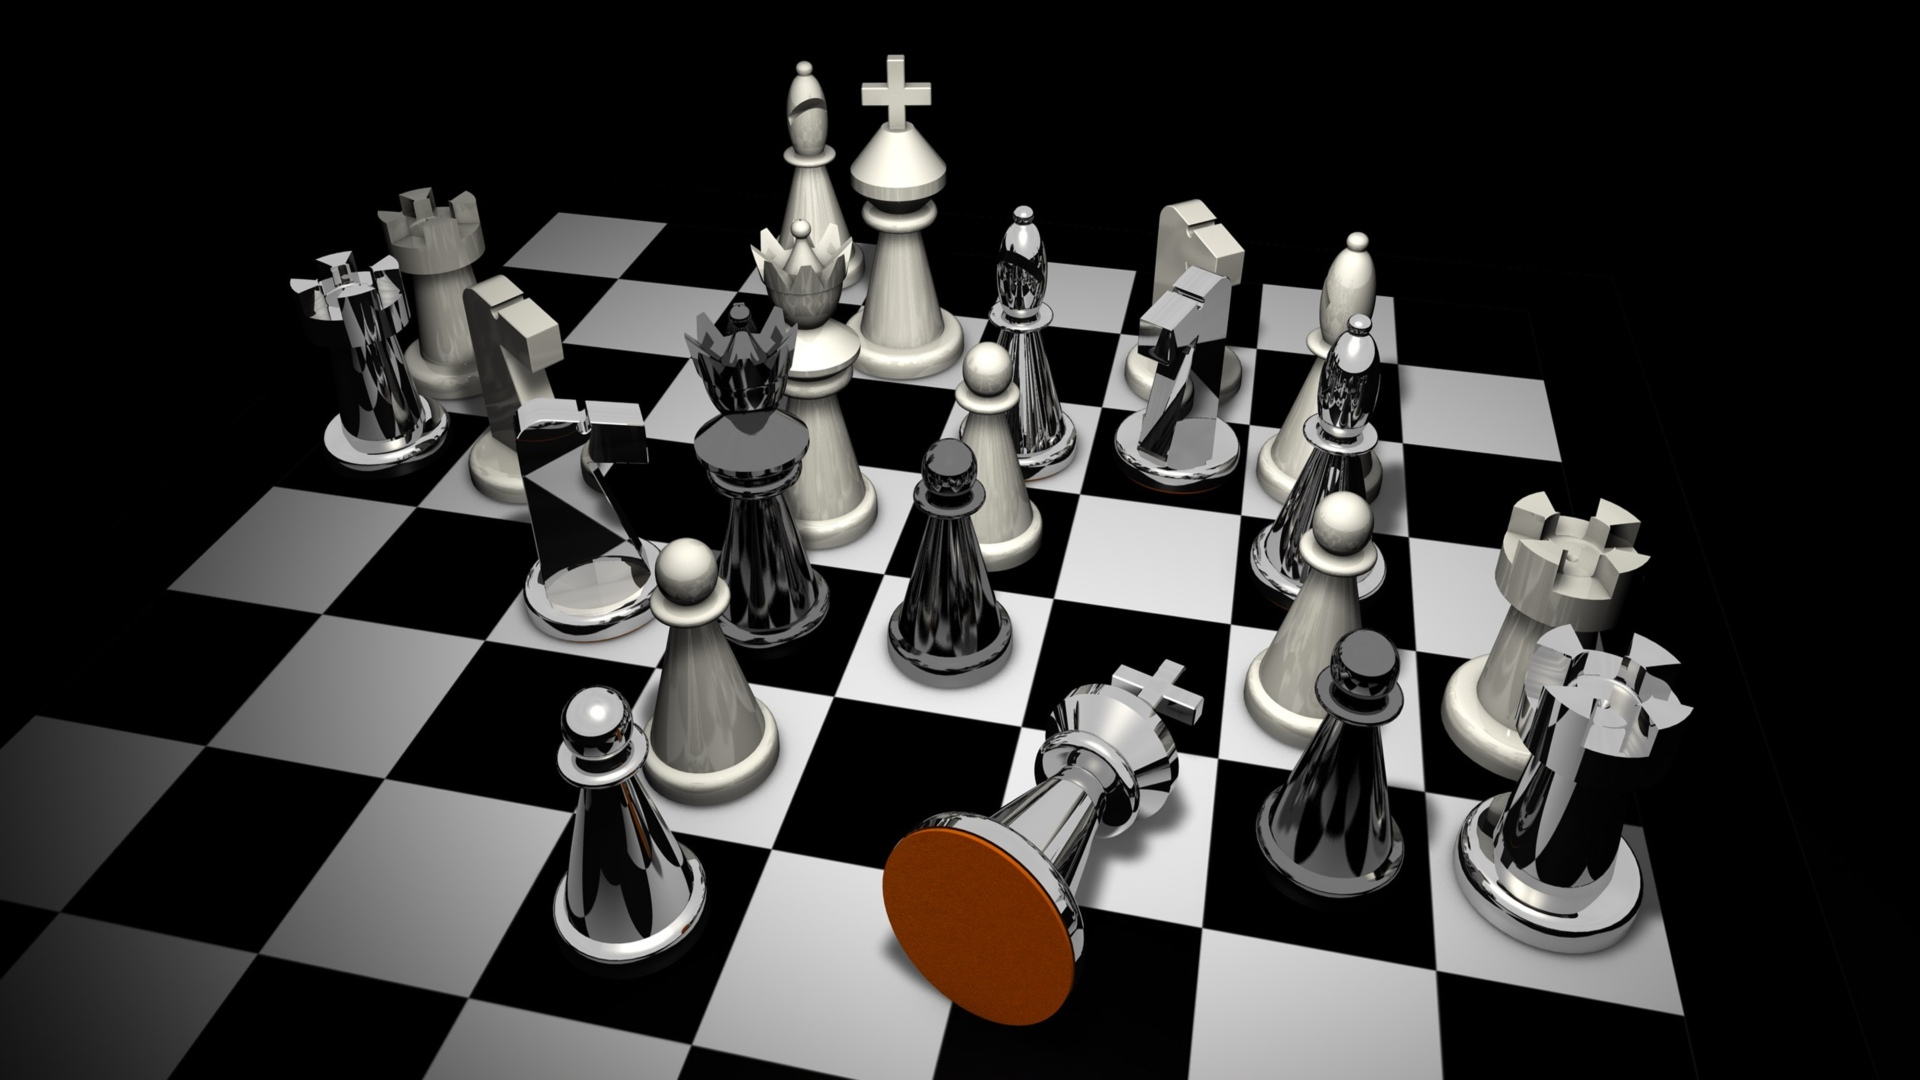 Chess Online Game Wallpaper